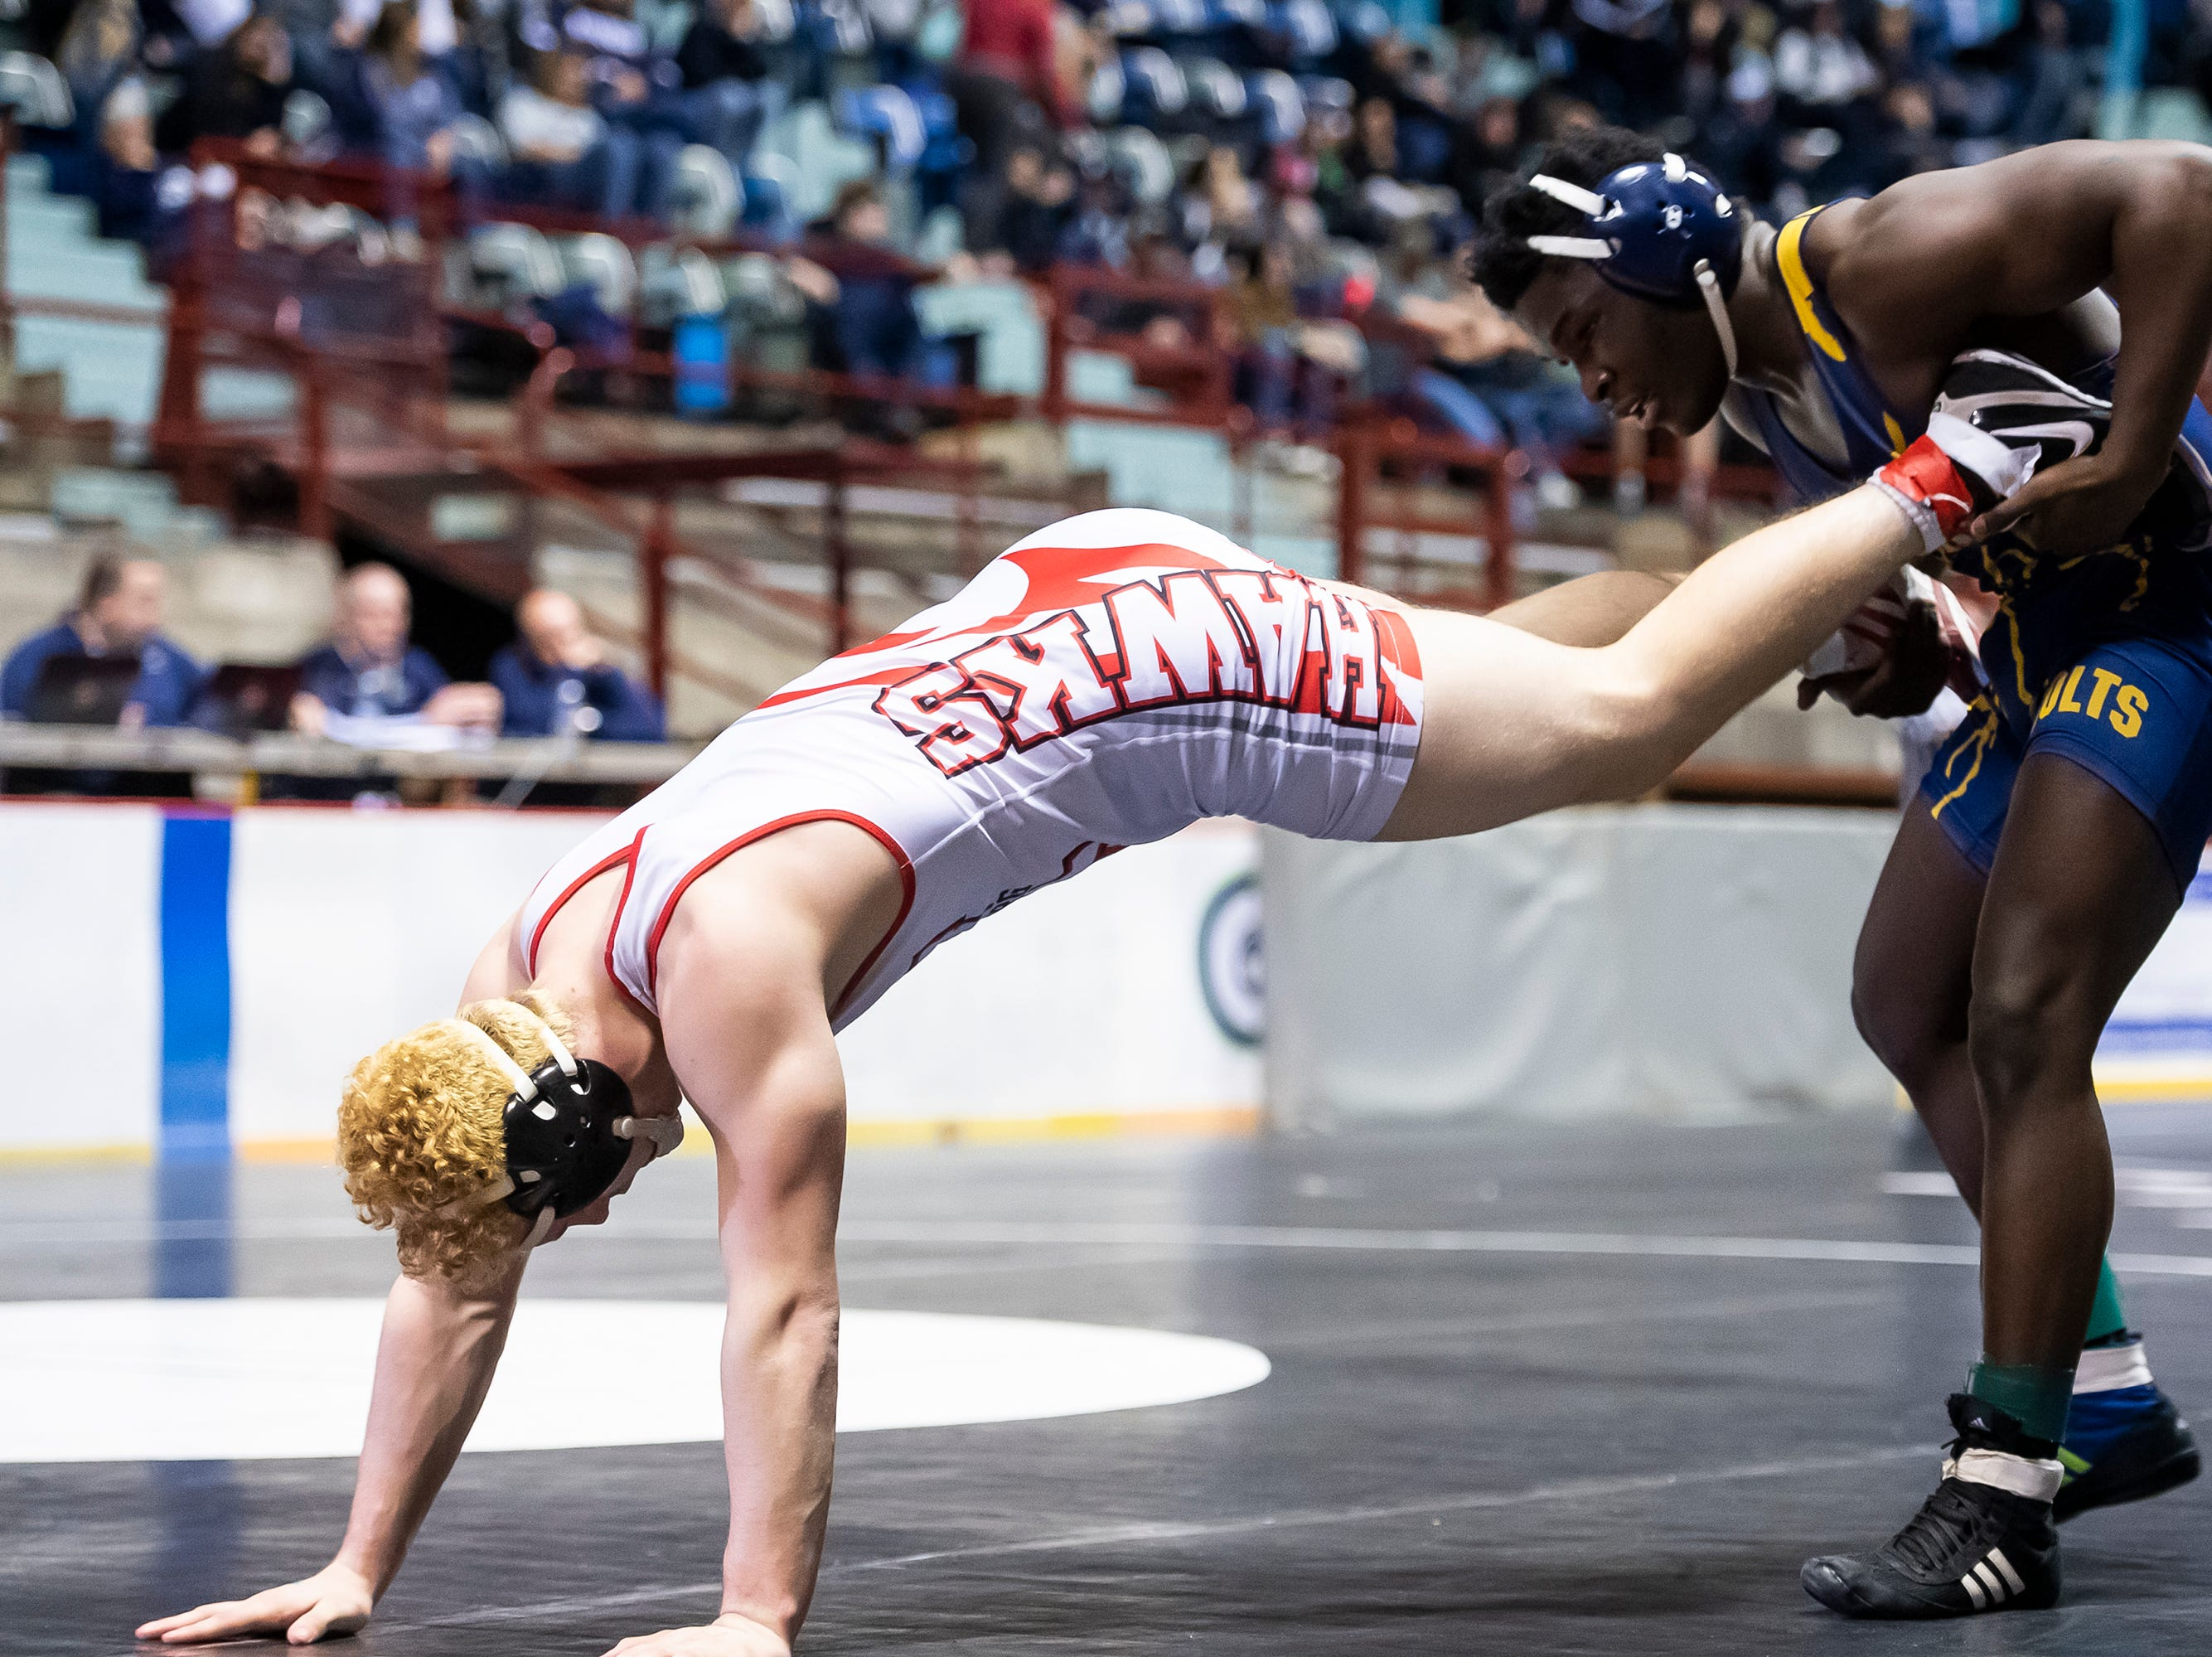 Littlestown's Carl Harris controls Hamburg's Brendan Hamilton during a 170-pound championship bout at the District 3 wrestling championships at Hersheypark Arena Saturday, February 23, 2019. Harris won by decision 7-4.